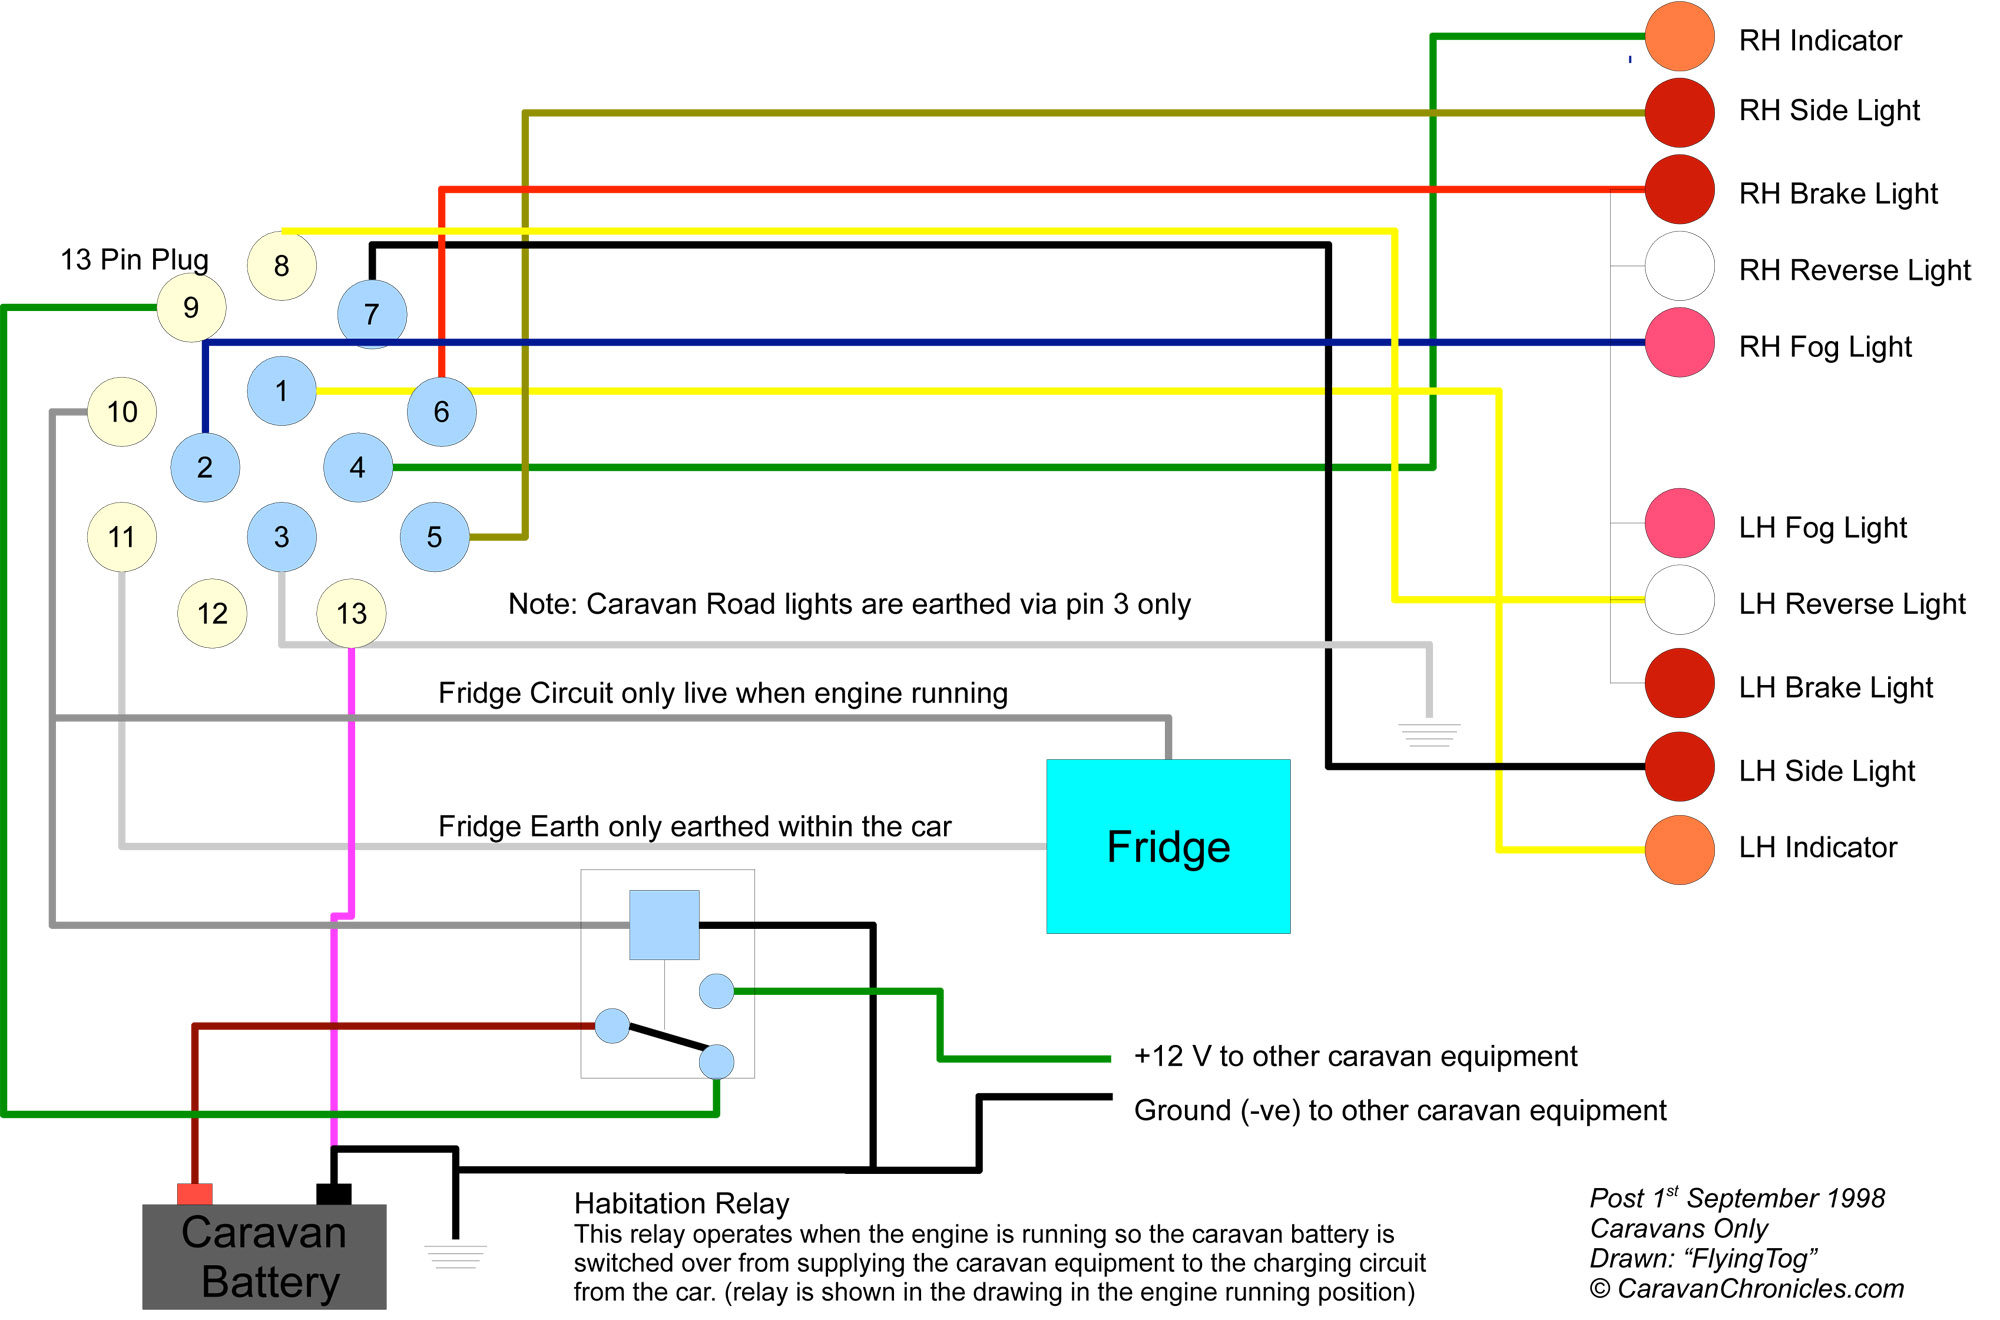 Leisure Battery Wiring Diagram Further 12 Volt Relay Diagrams For Dryer Understanding The Charging Circuit Caravan Chronicles